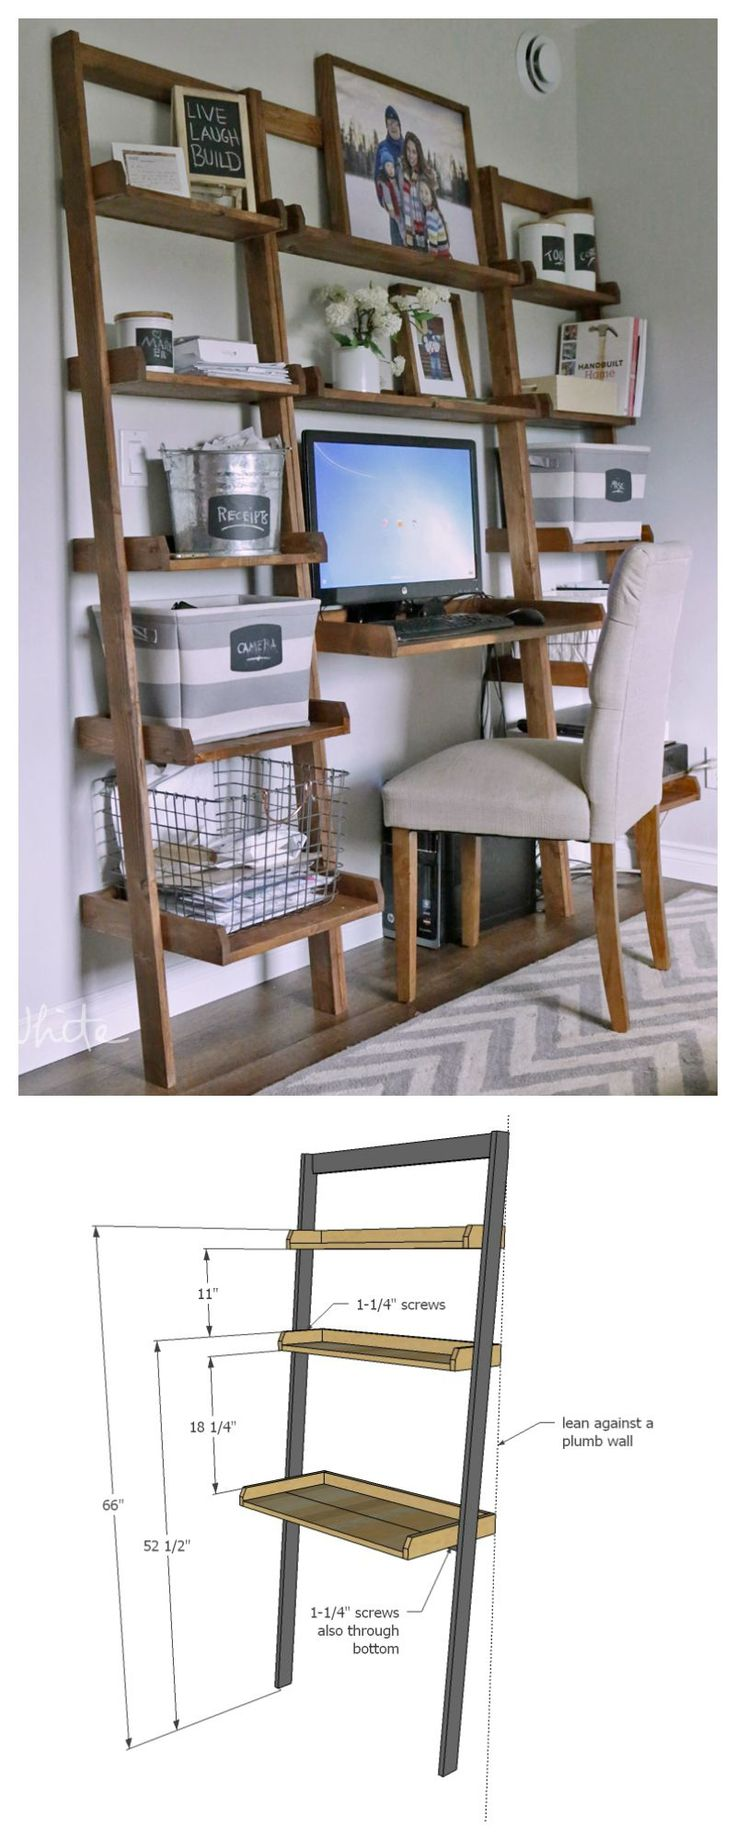 DIY desk made with all 1x boards!  small space office! Ana White | Build a Leaning Wall Ladder Desk | Free and Easy DIY Project and Furniture Plans